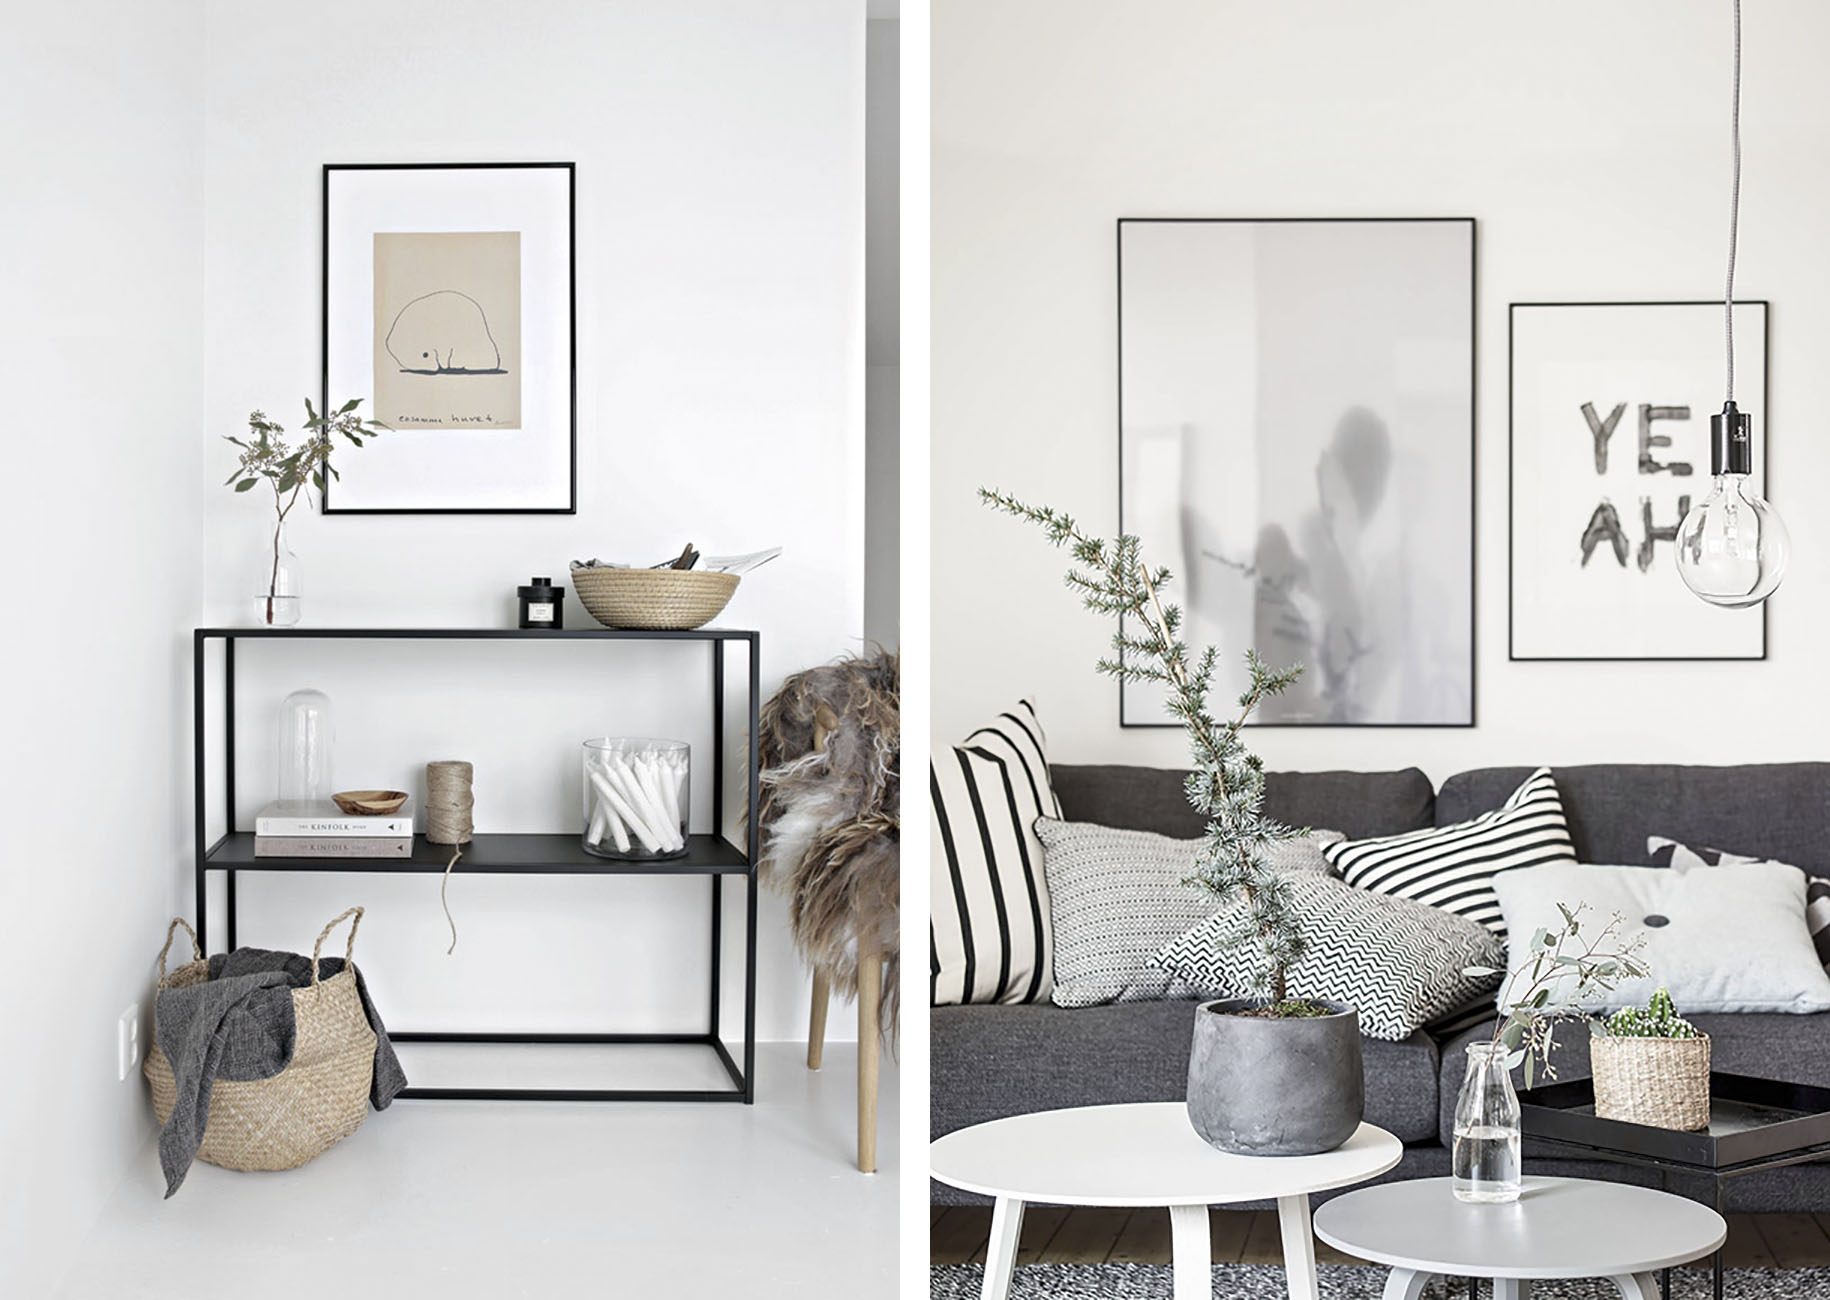 Scandinavian Interiors With Natural Materials   Top 10 Tips For Adding  Scandinavian Style To Your Home